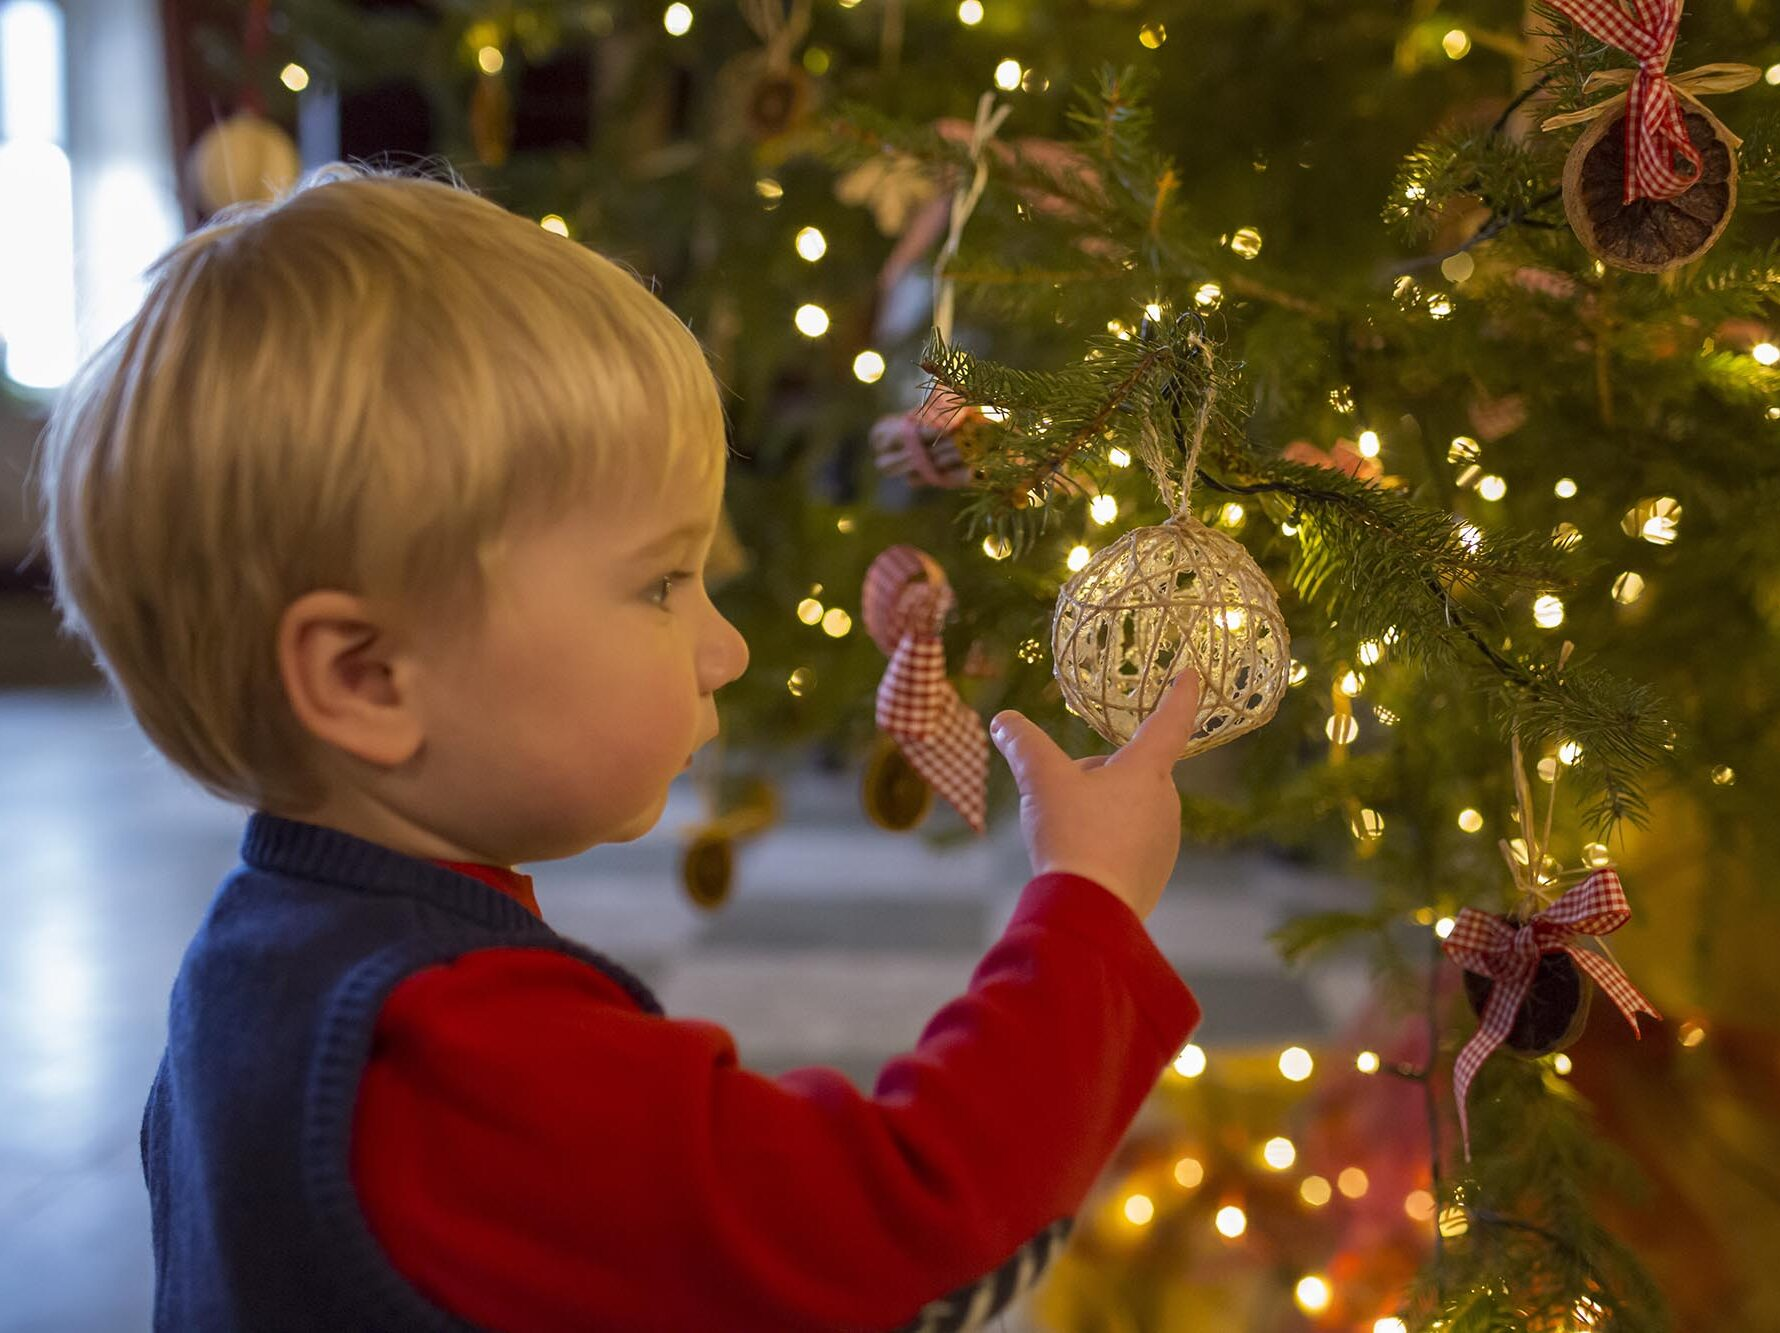 Boy looking at the decorations on a Christmas tree at Stourhead, Wiltshire